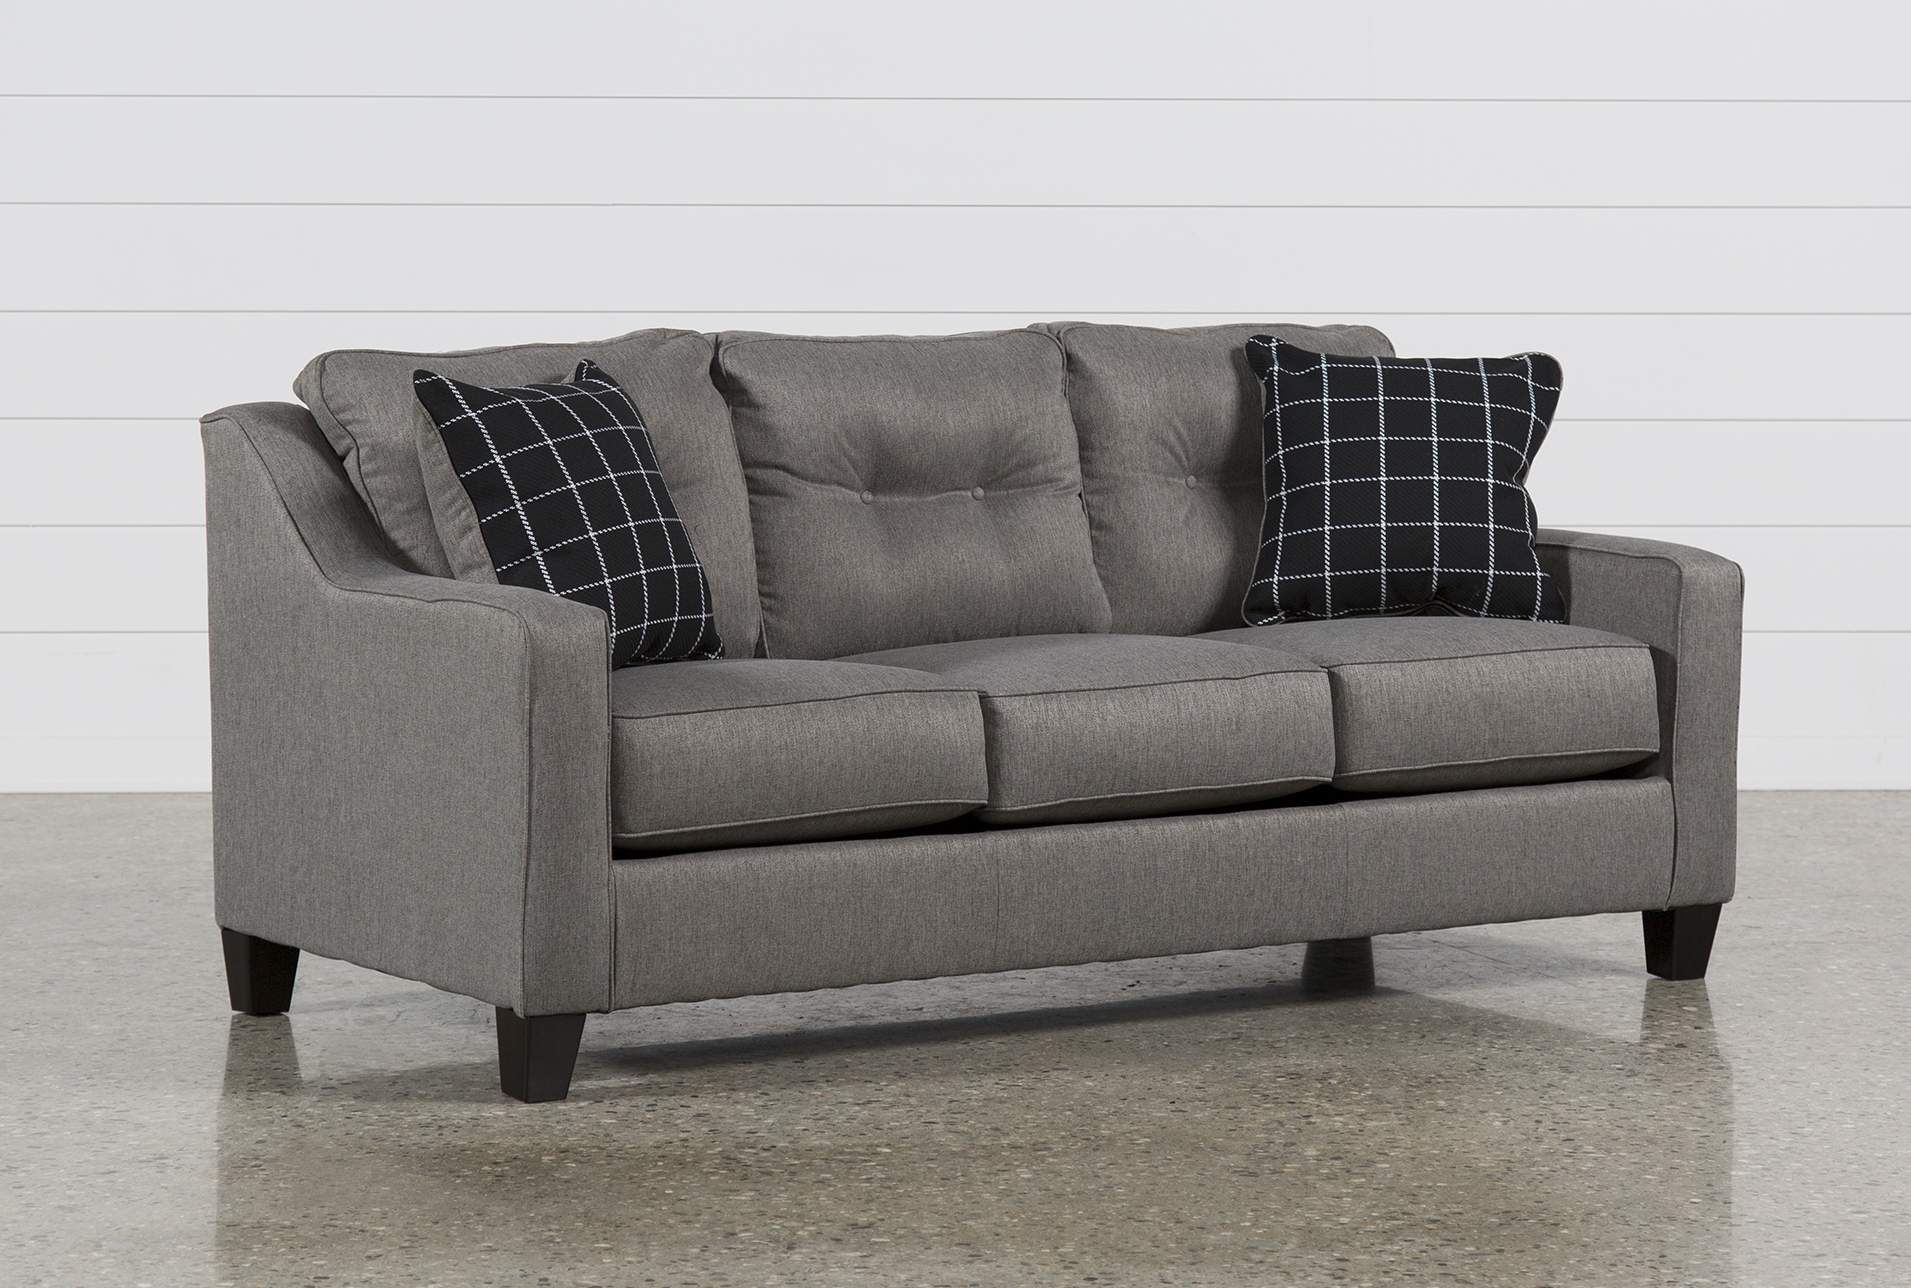 Superieur Brindon Charcoal Queen Sofa Sleeper   360